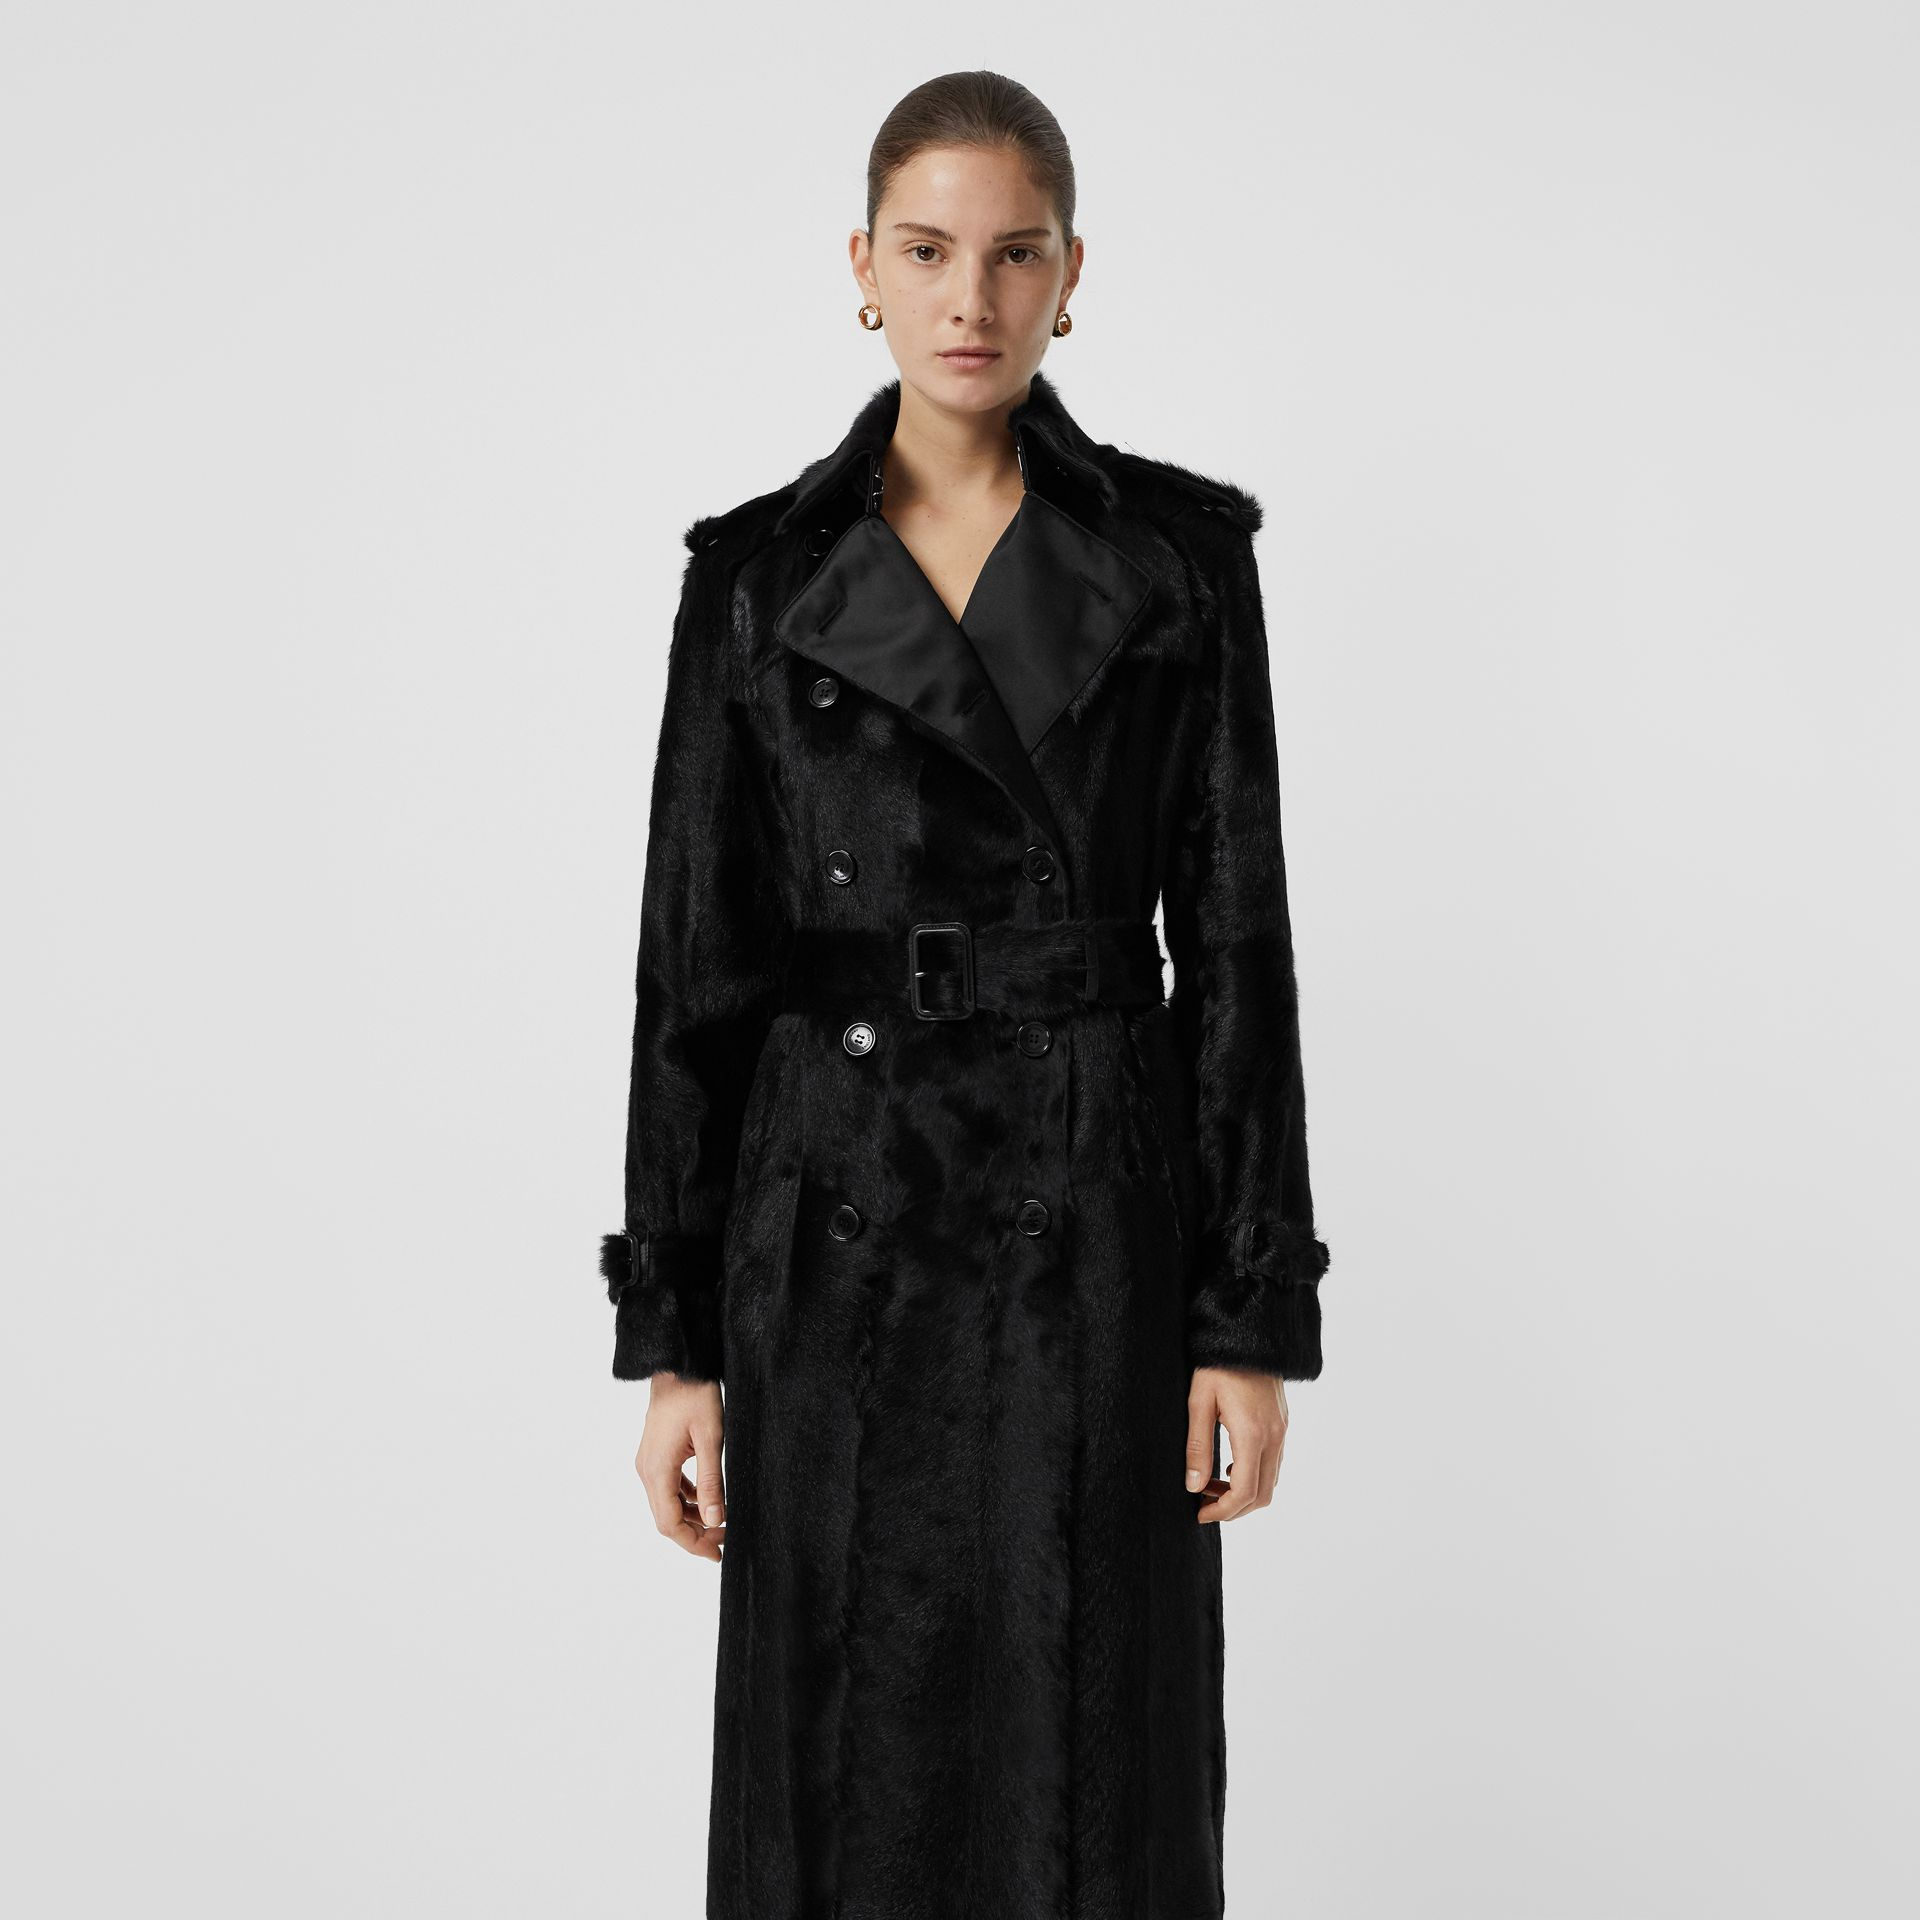 Goat Trench Coat in Black - Women | Burberry - gallery image 7